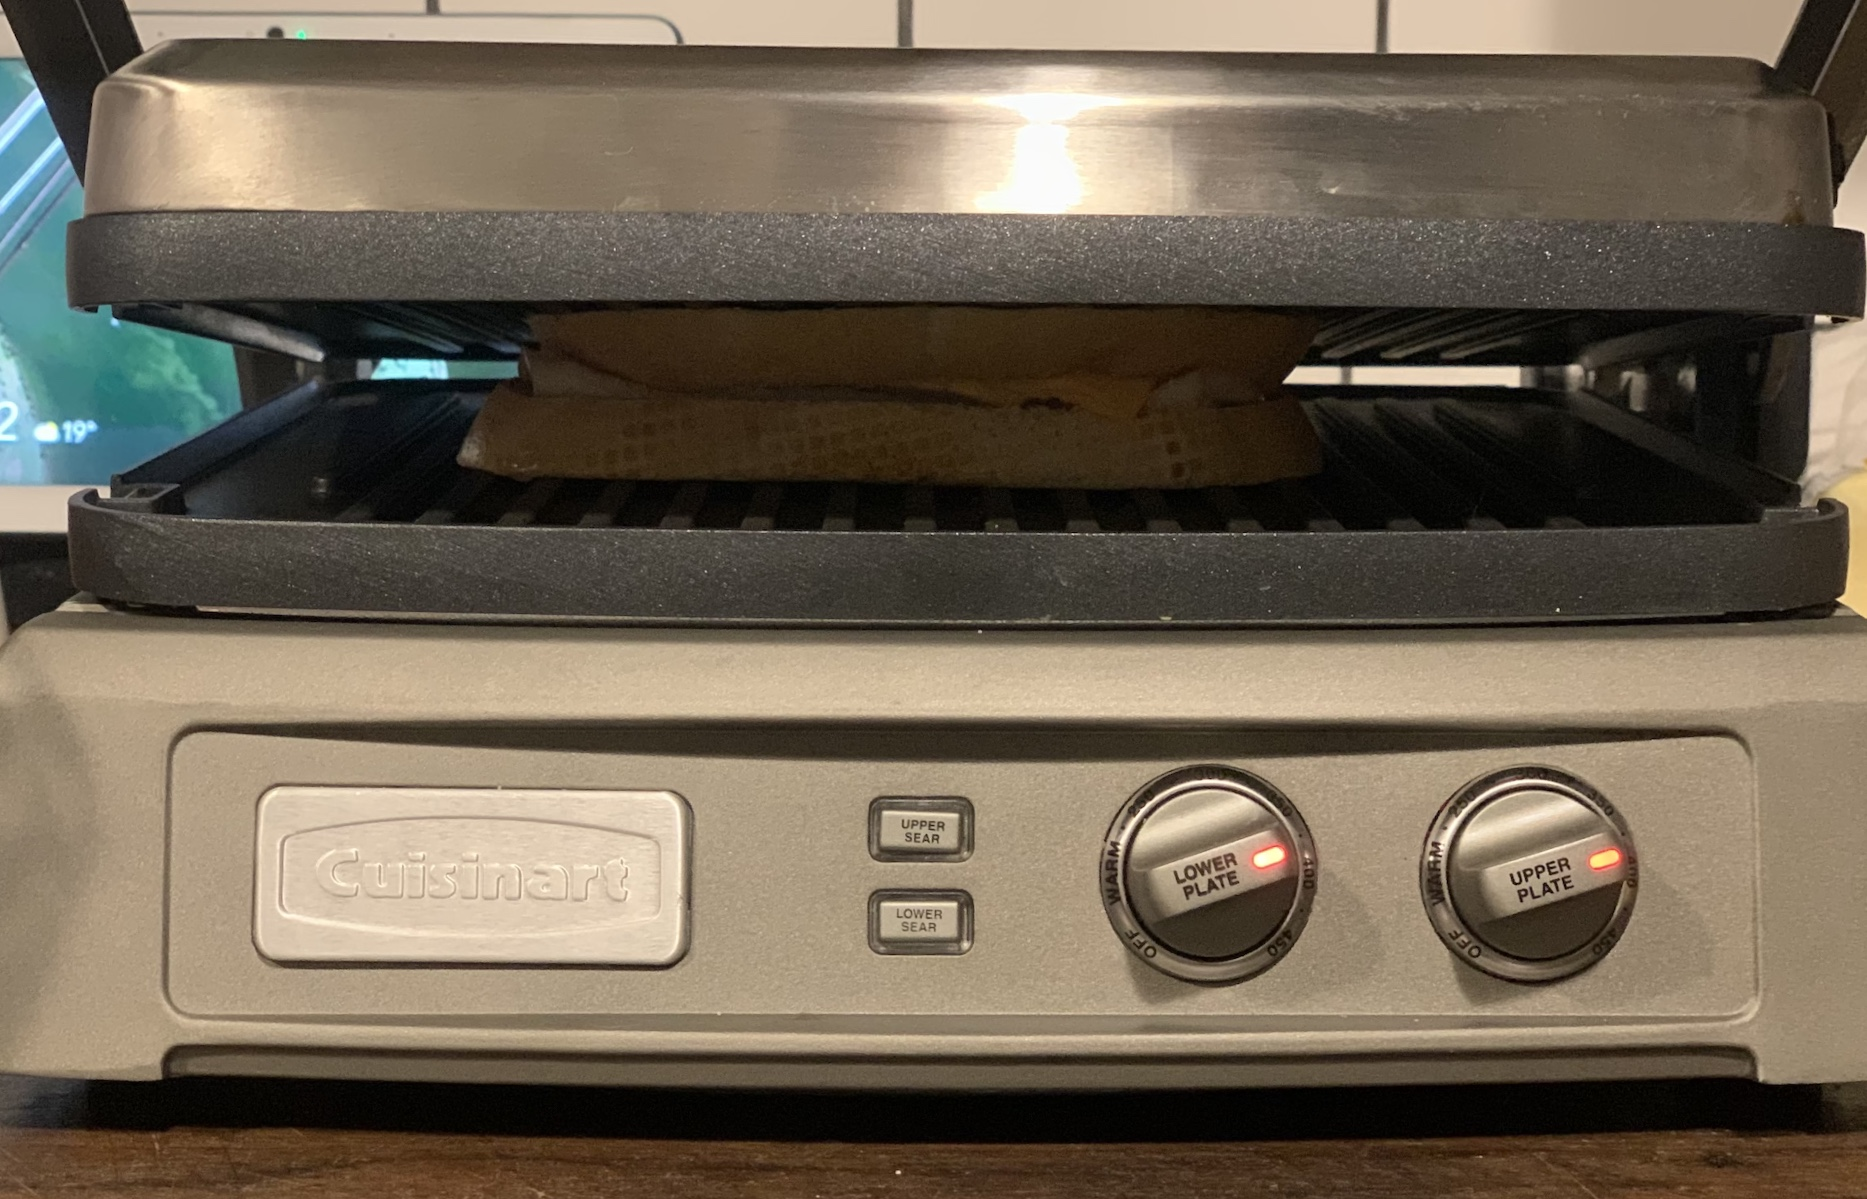 Cuisinart-Griddler-Deluxe-Dual-Temp-Grill-review